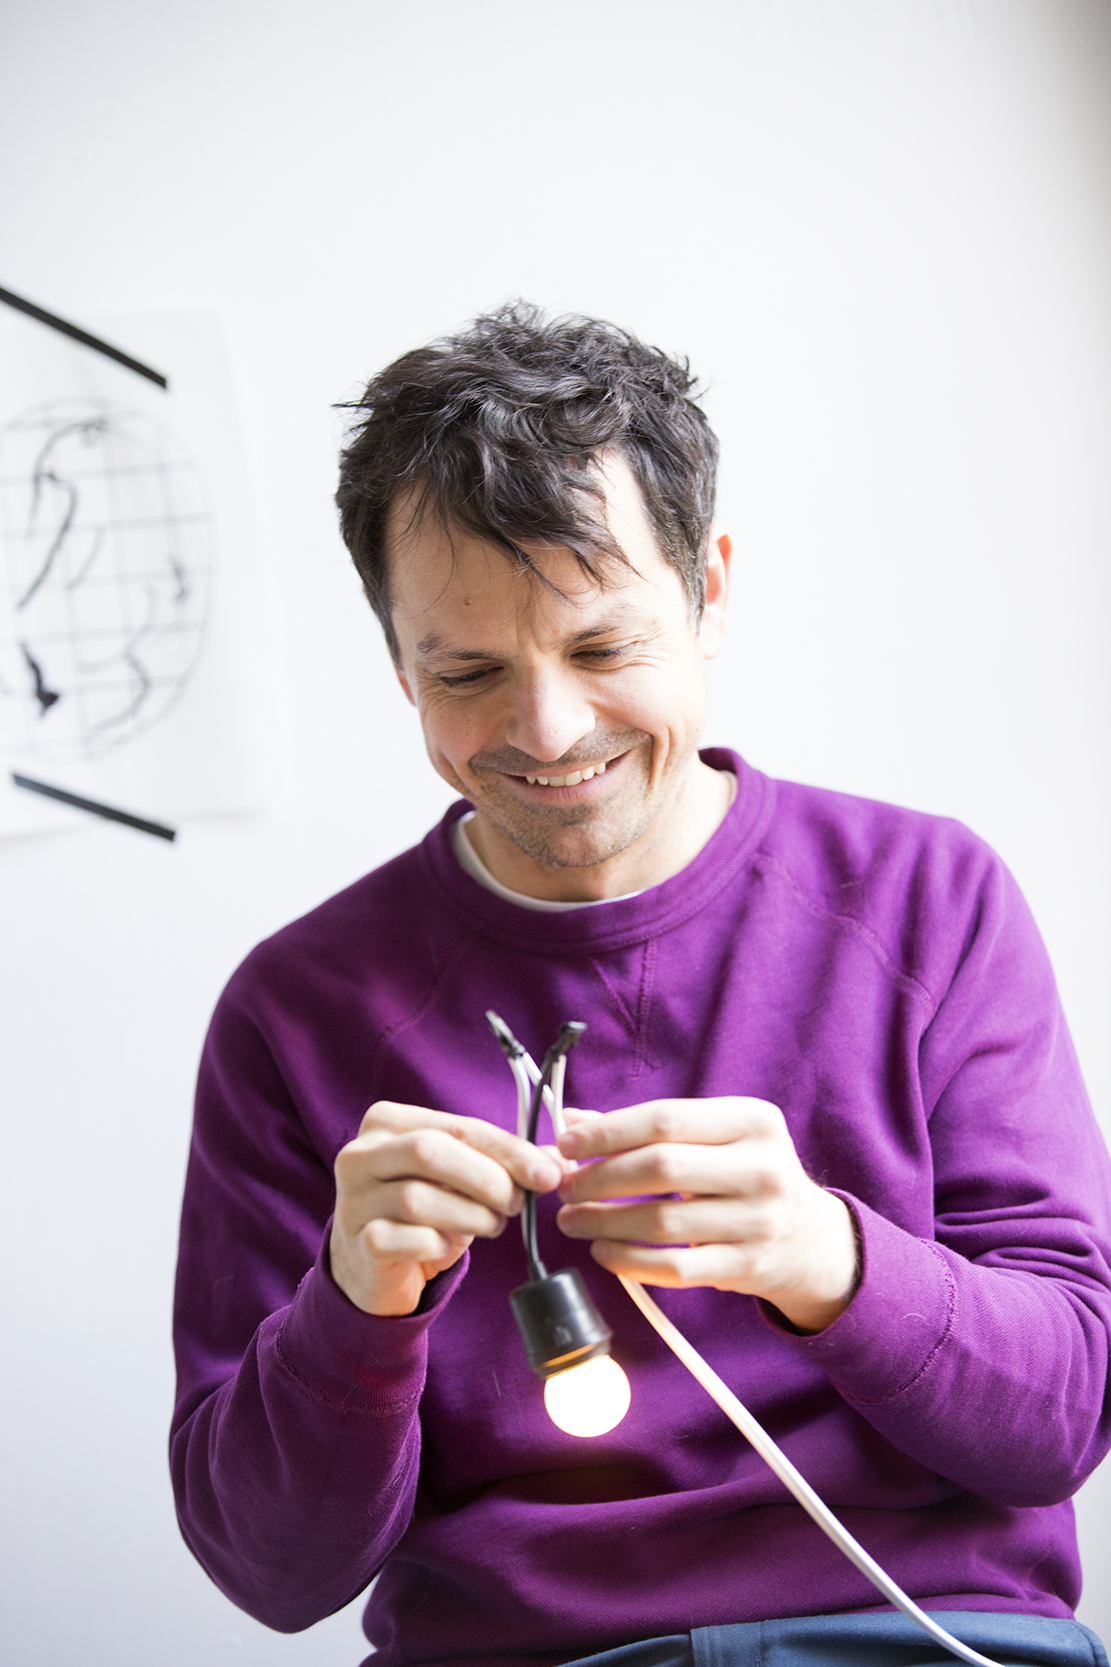 Federico Schott in his studio, New York, NY, 2015.